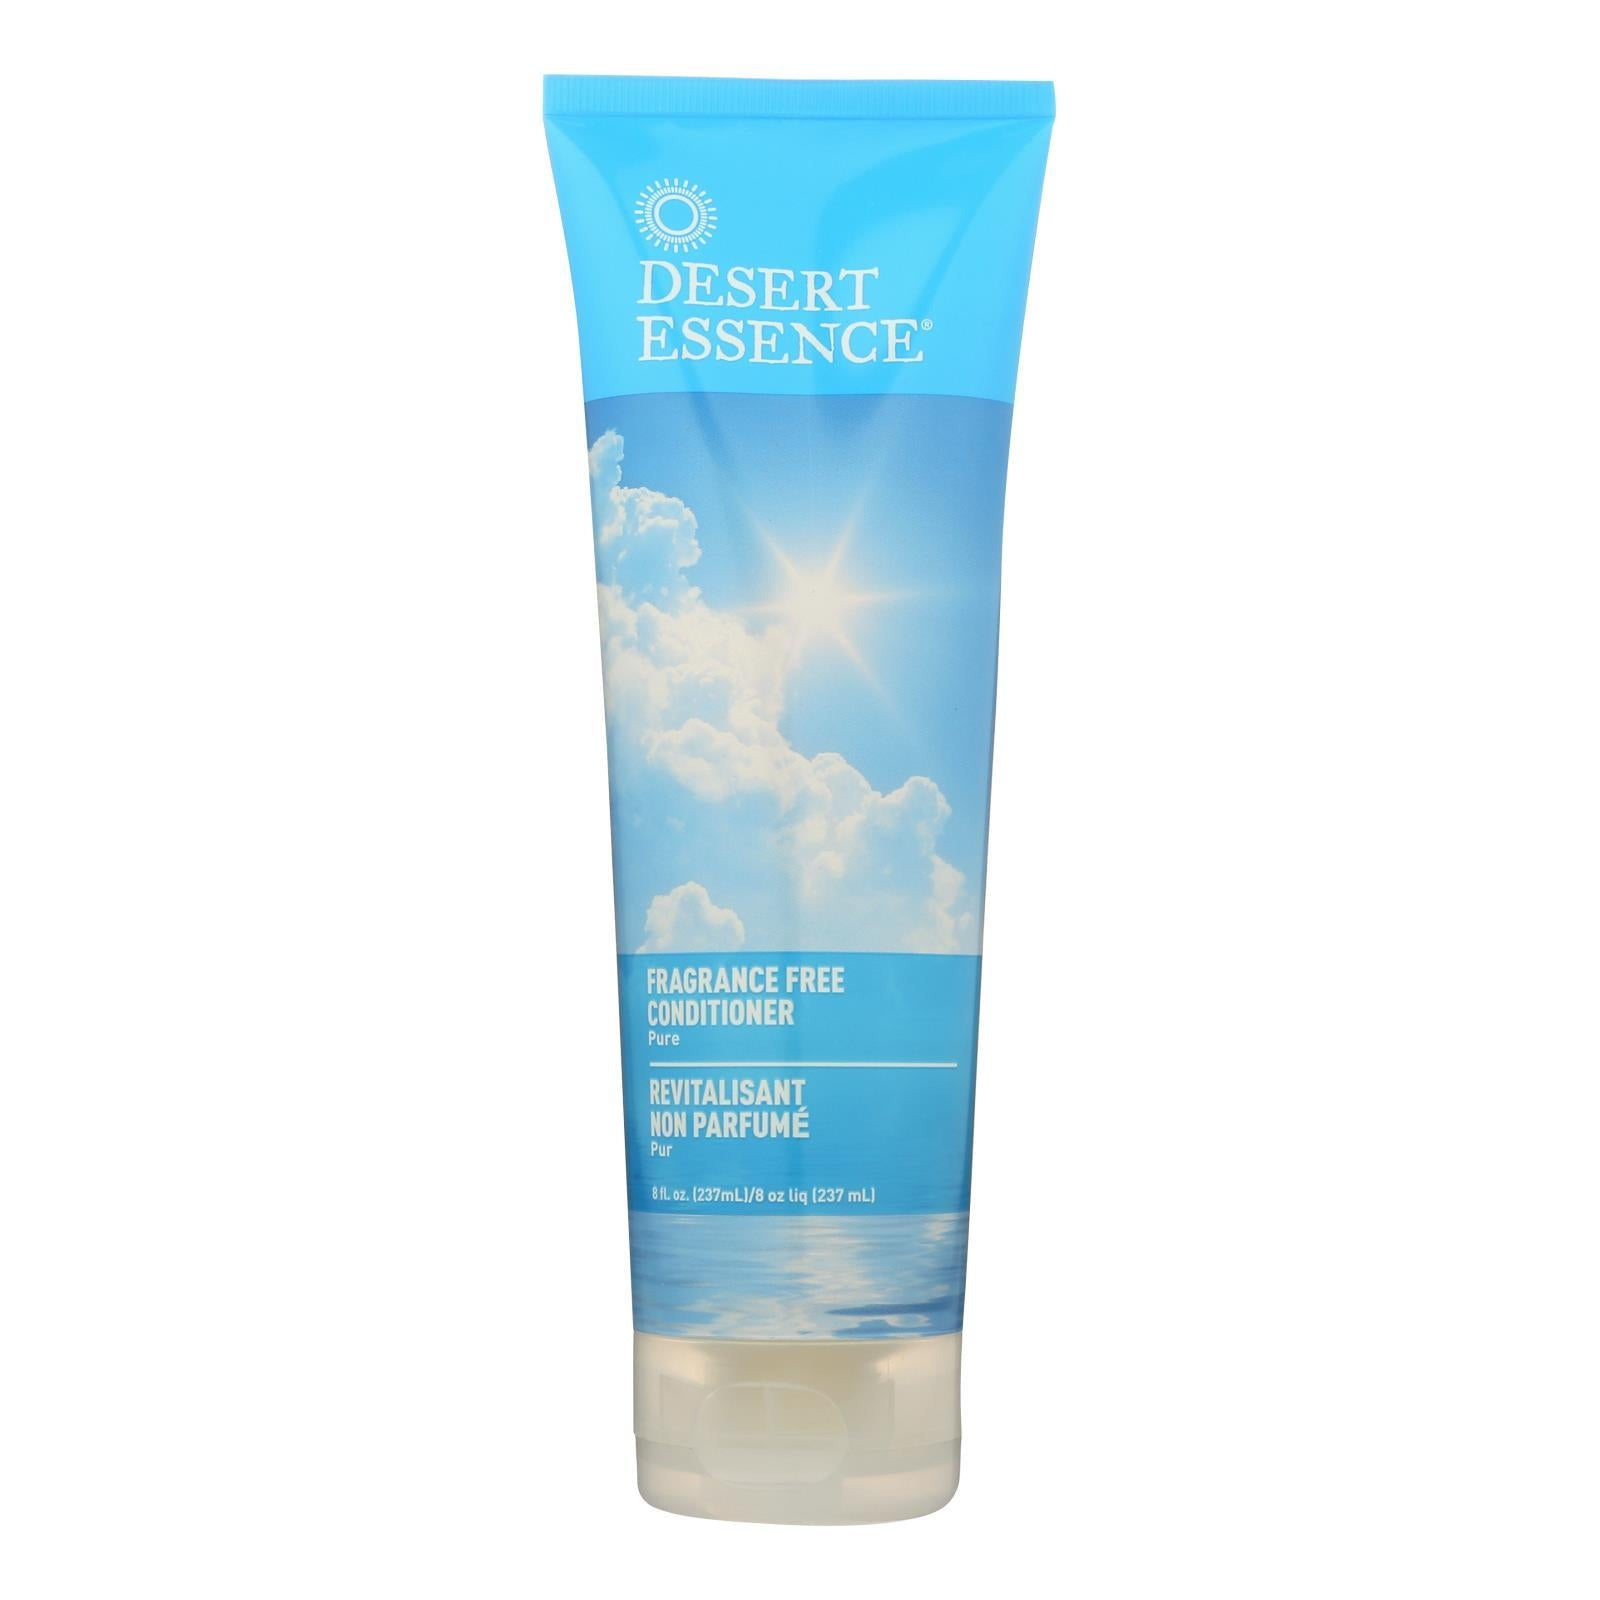 Desert Essence - Pure Conditioner Fragrance Free - 8 Fl Oz - BeeGreen